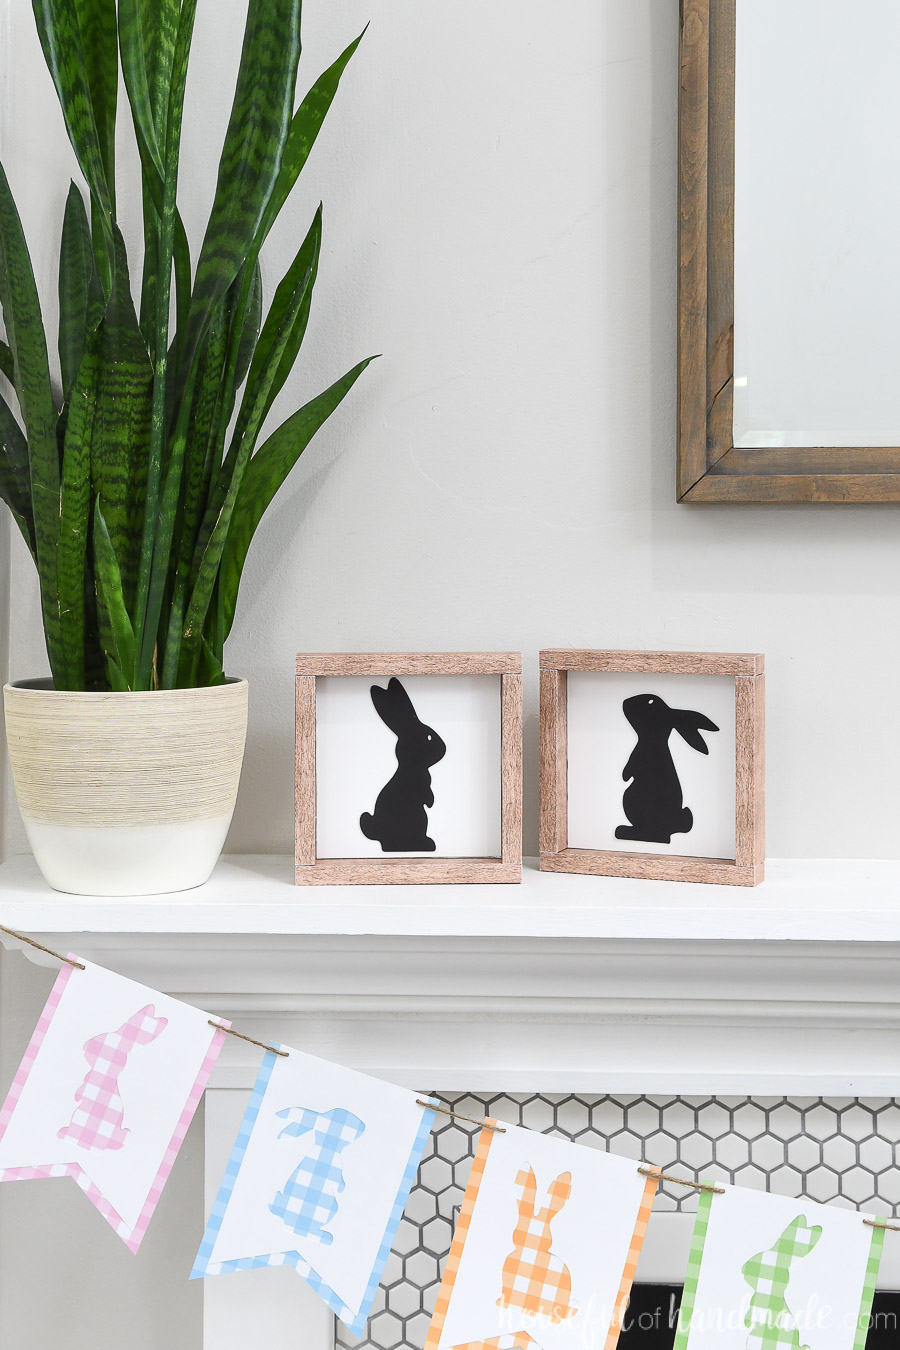 Two bunny silhouette wood signs on a mantel next to a plant.